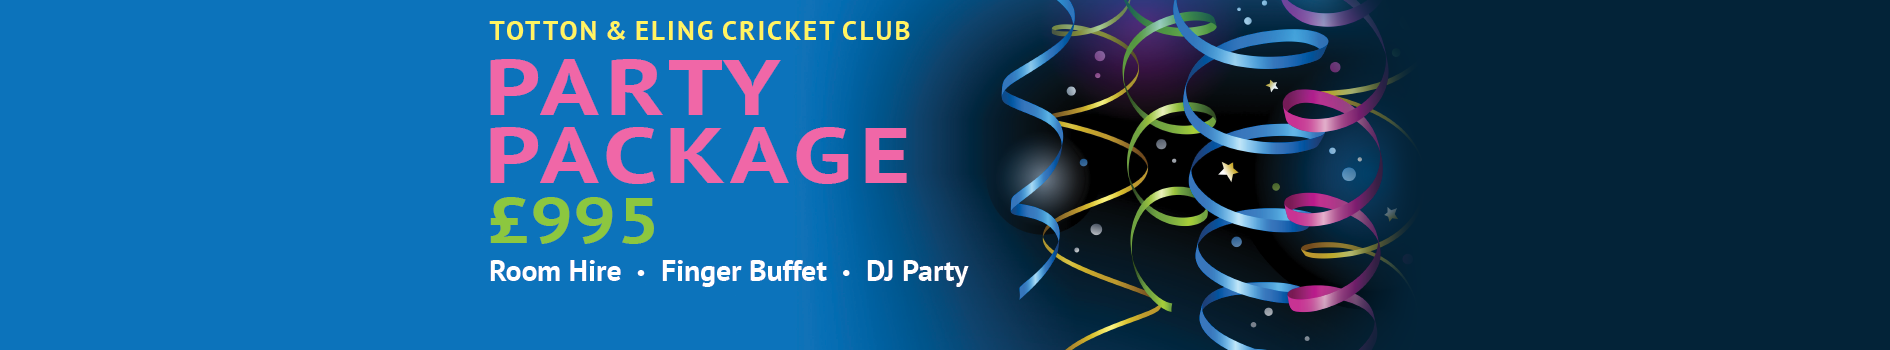 Party Package Web Banner 2019 - Updated